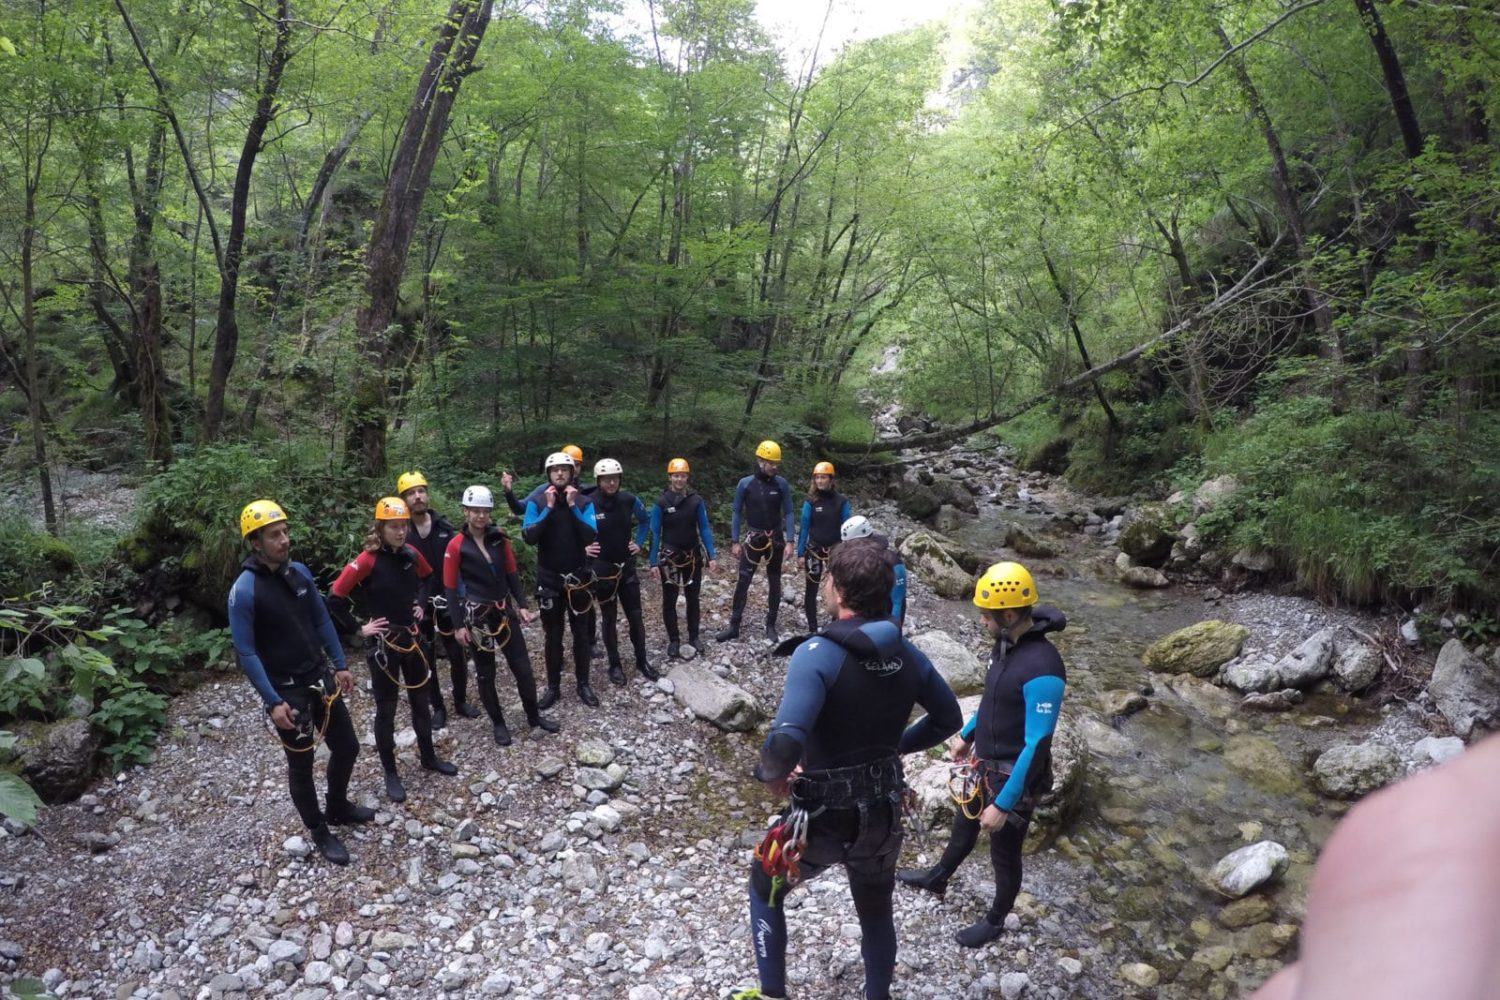 Canyoning in Fratarica